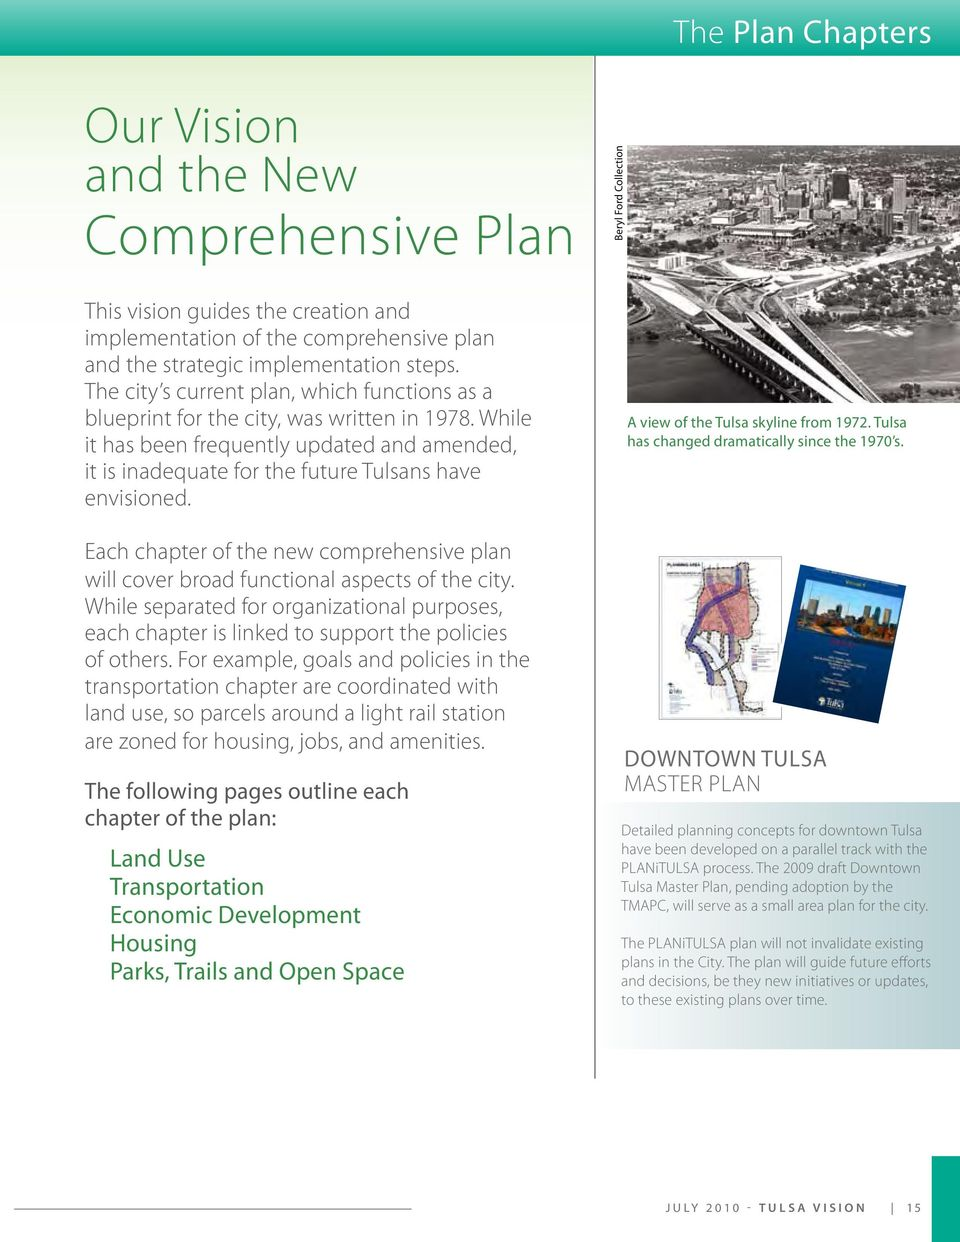 Each chapter of the new comprehensive plan will cover broad functional aspects of the city. While separated for organizational purposes, each chapter is linked to support the policies of others.